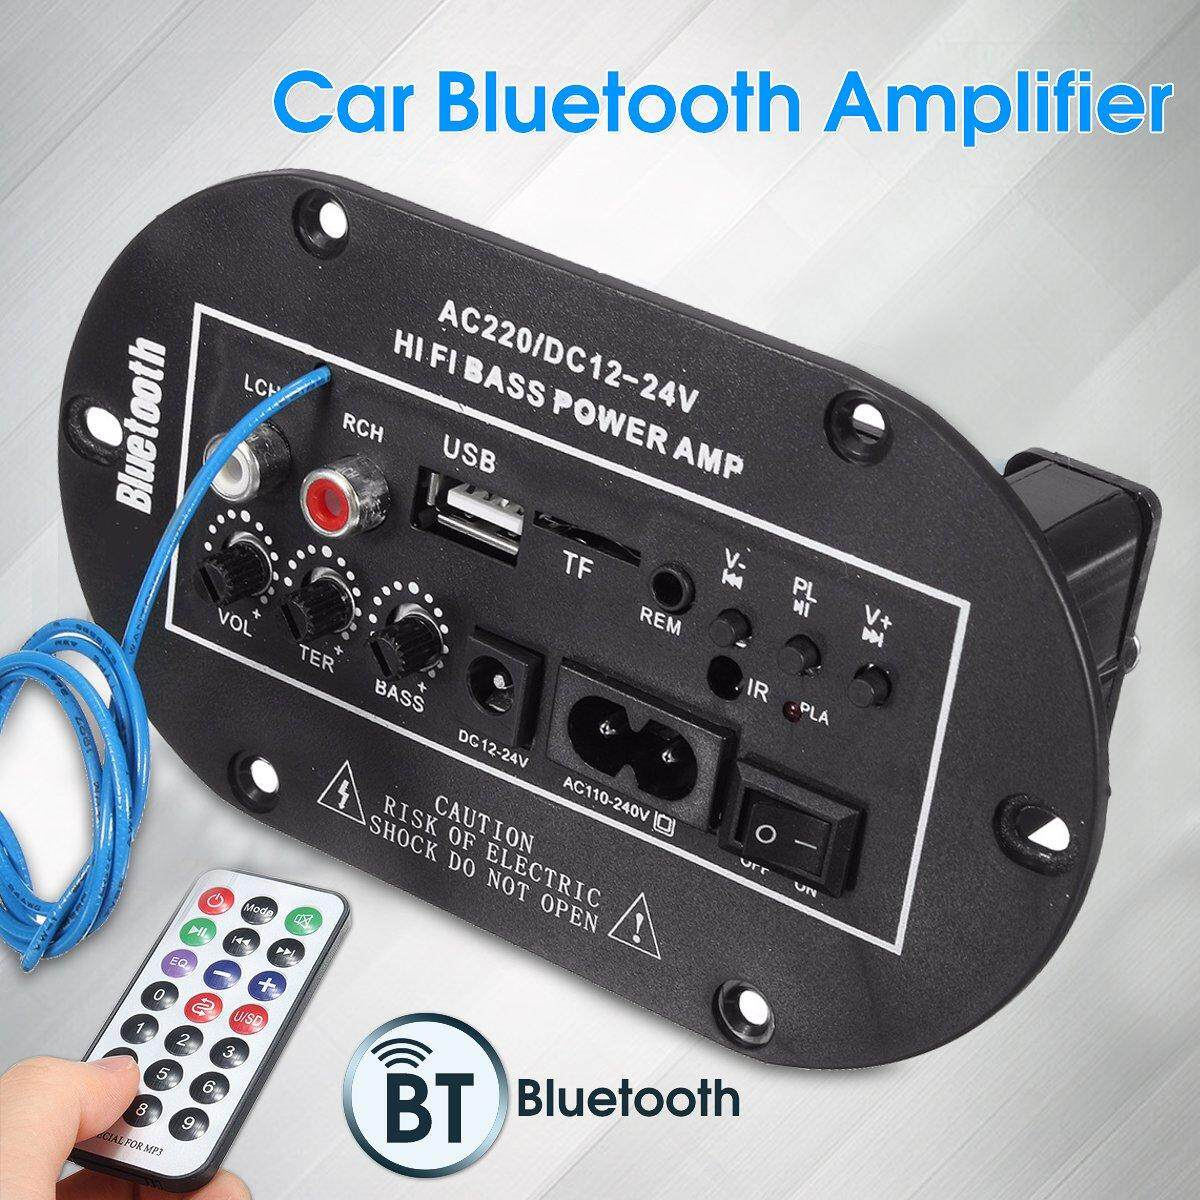 Car Amplifier For Sale Audio Online Brands Prices Speakers Wired In Parallel Recommended Stable At 1 Ohm Mono 50w Bluetooth Subwoofer Hi Fi Bass Board Tf Usb 220v 12v